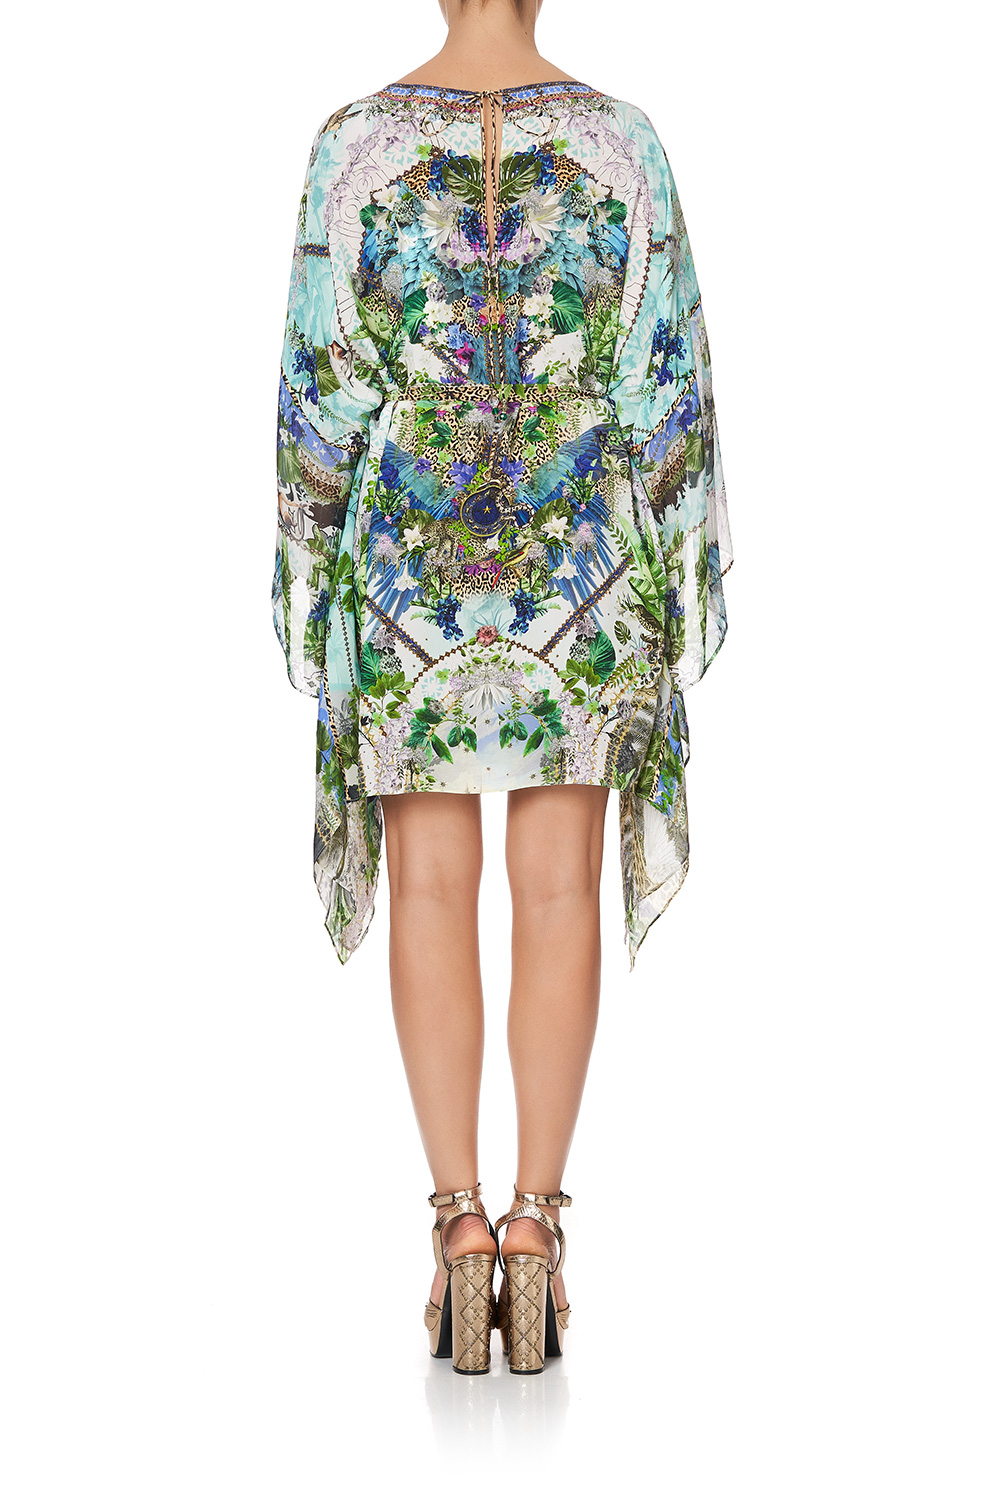 camilla_short_kaftan_with_sheer_sleeves_moon_garden_5